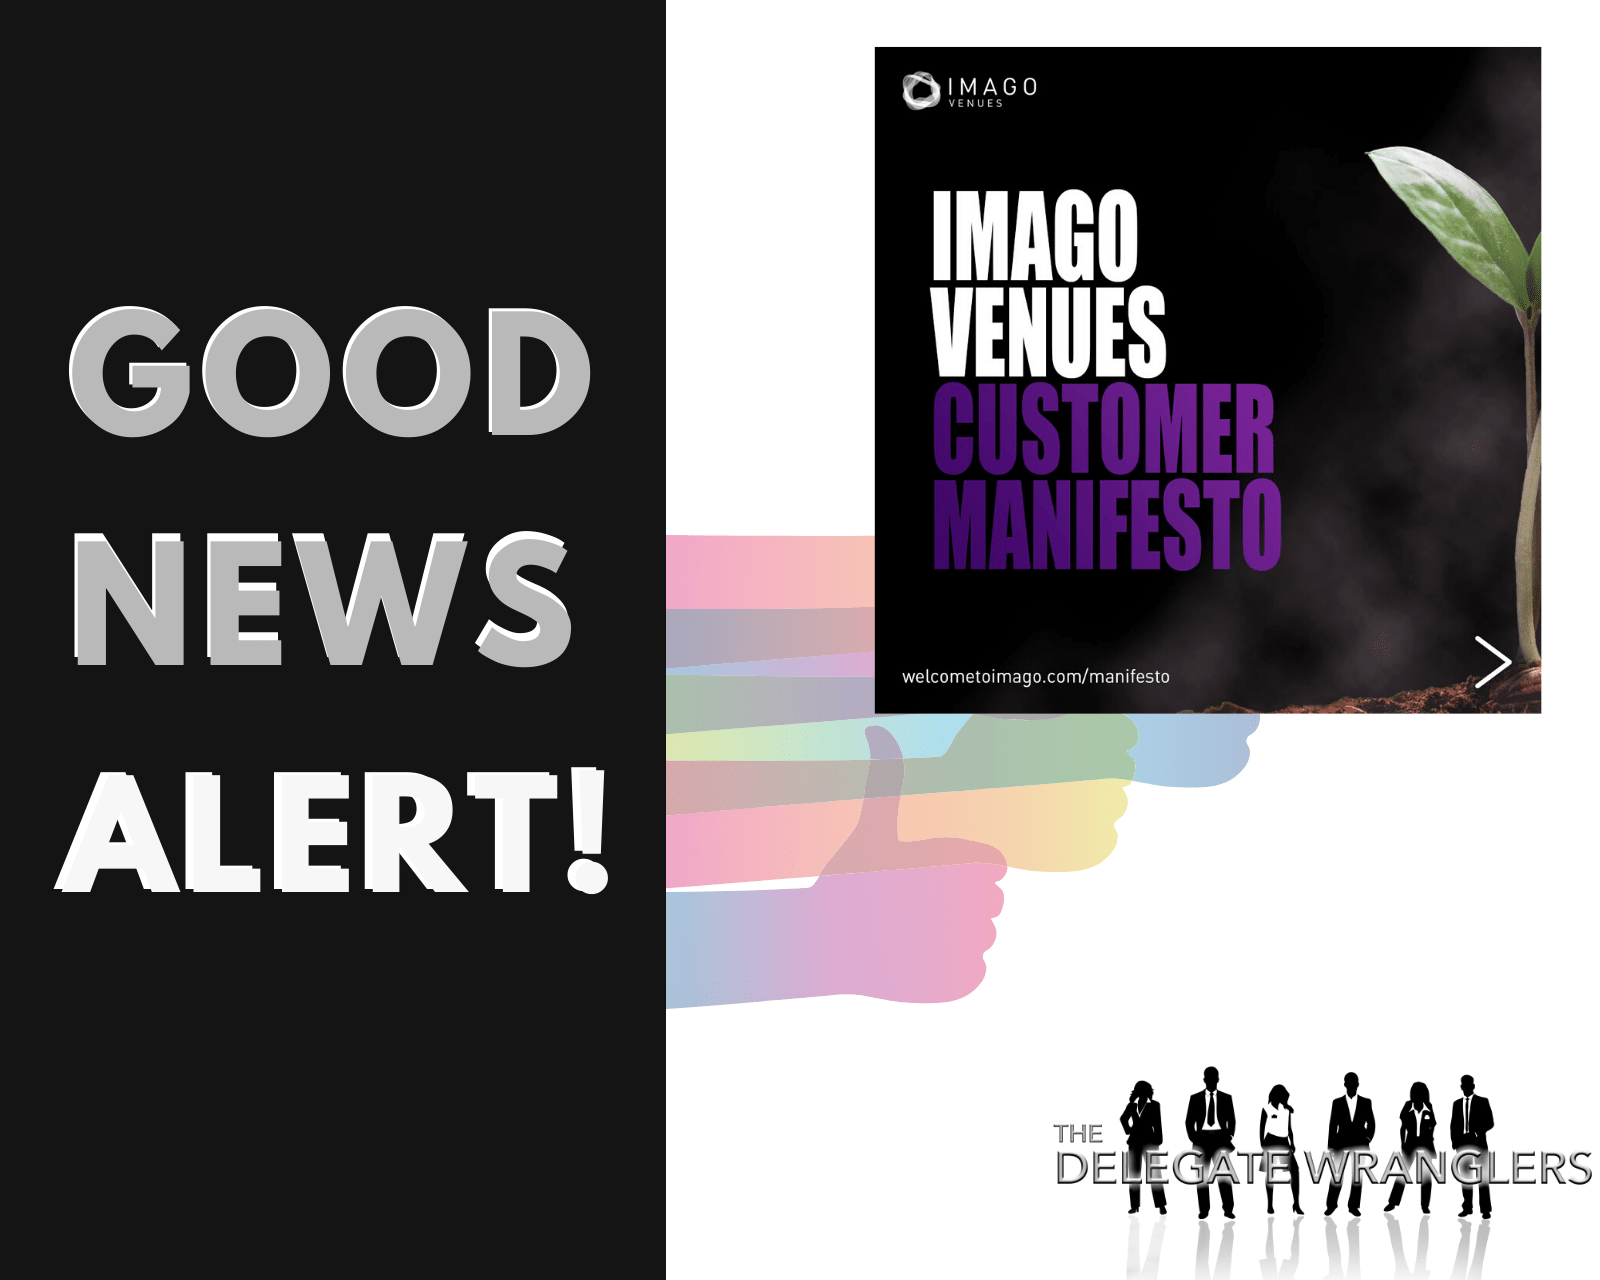 Imago Venues launch Customer Manifesto